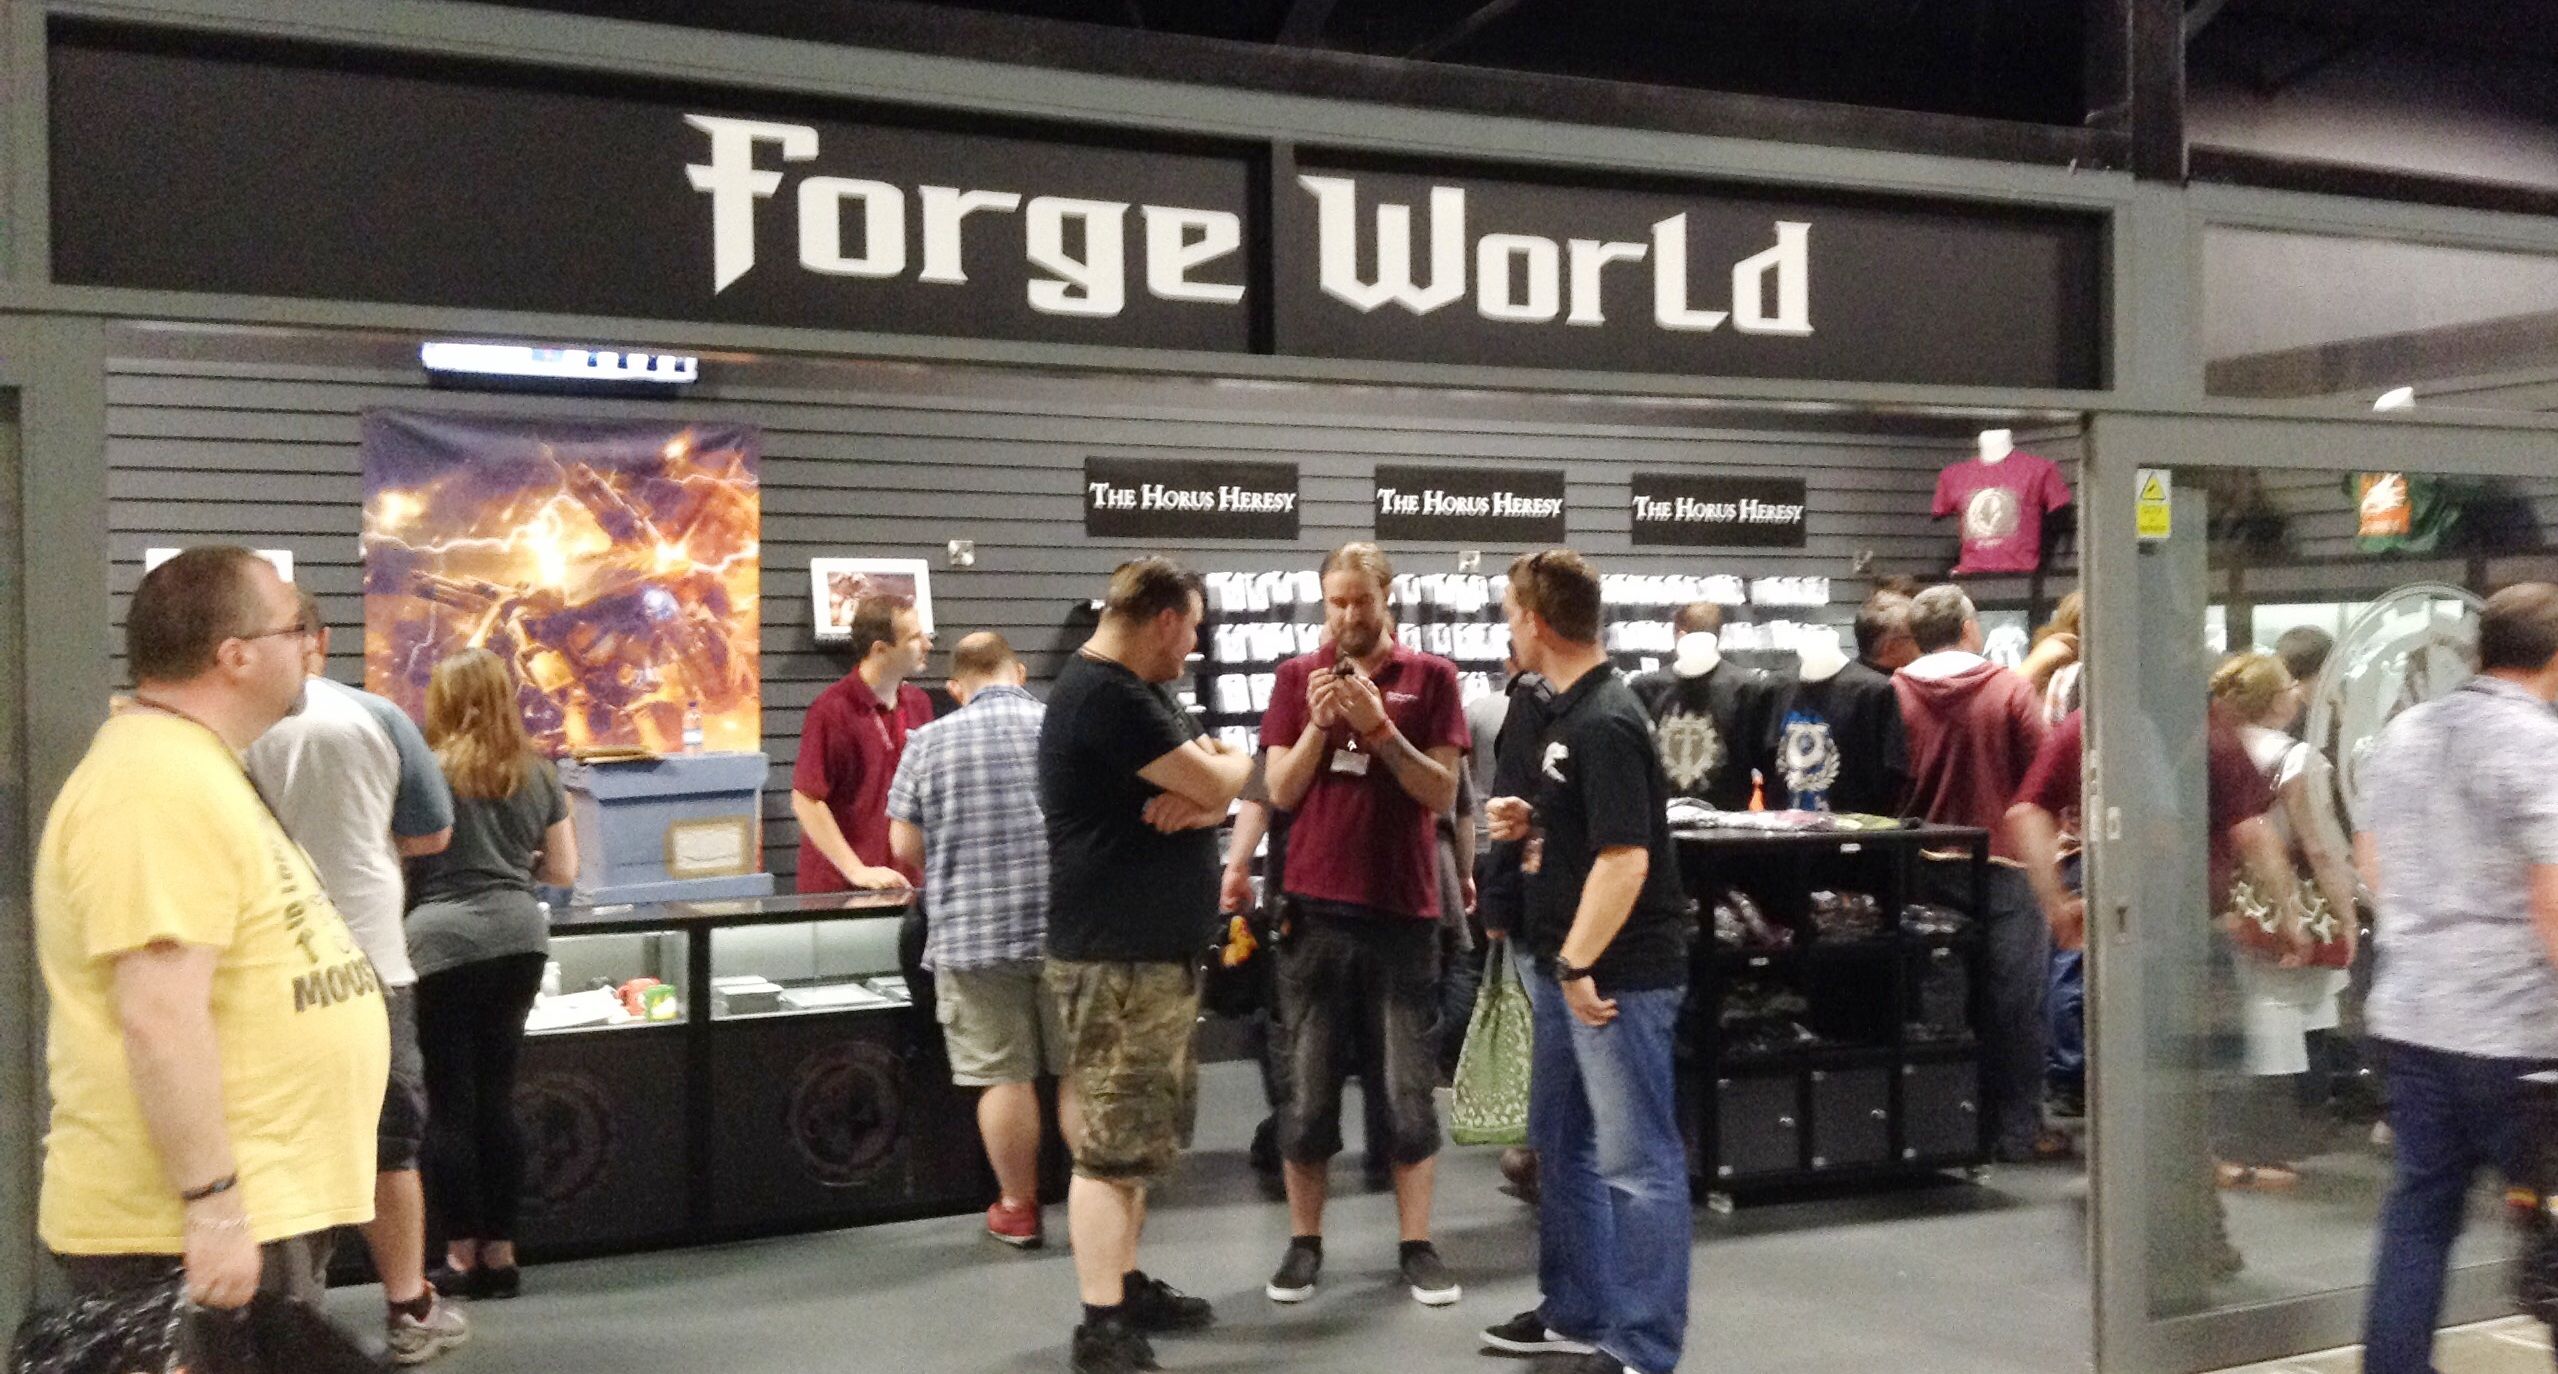 forge world store 1